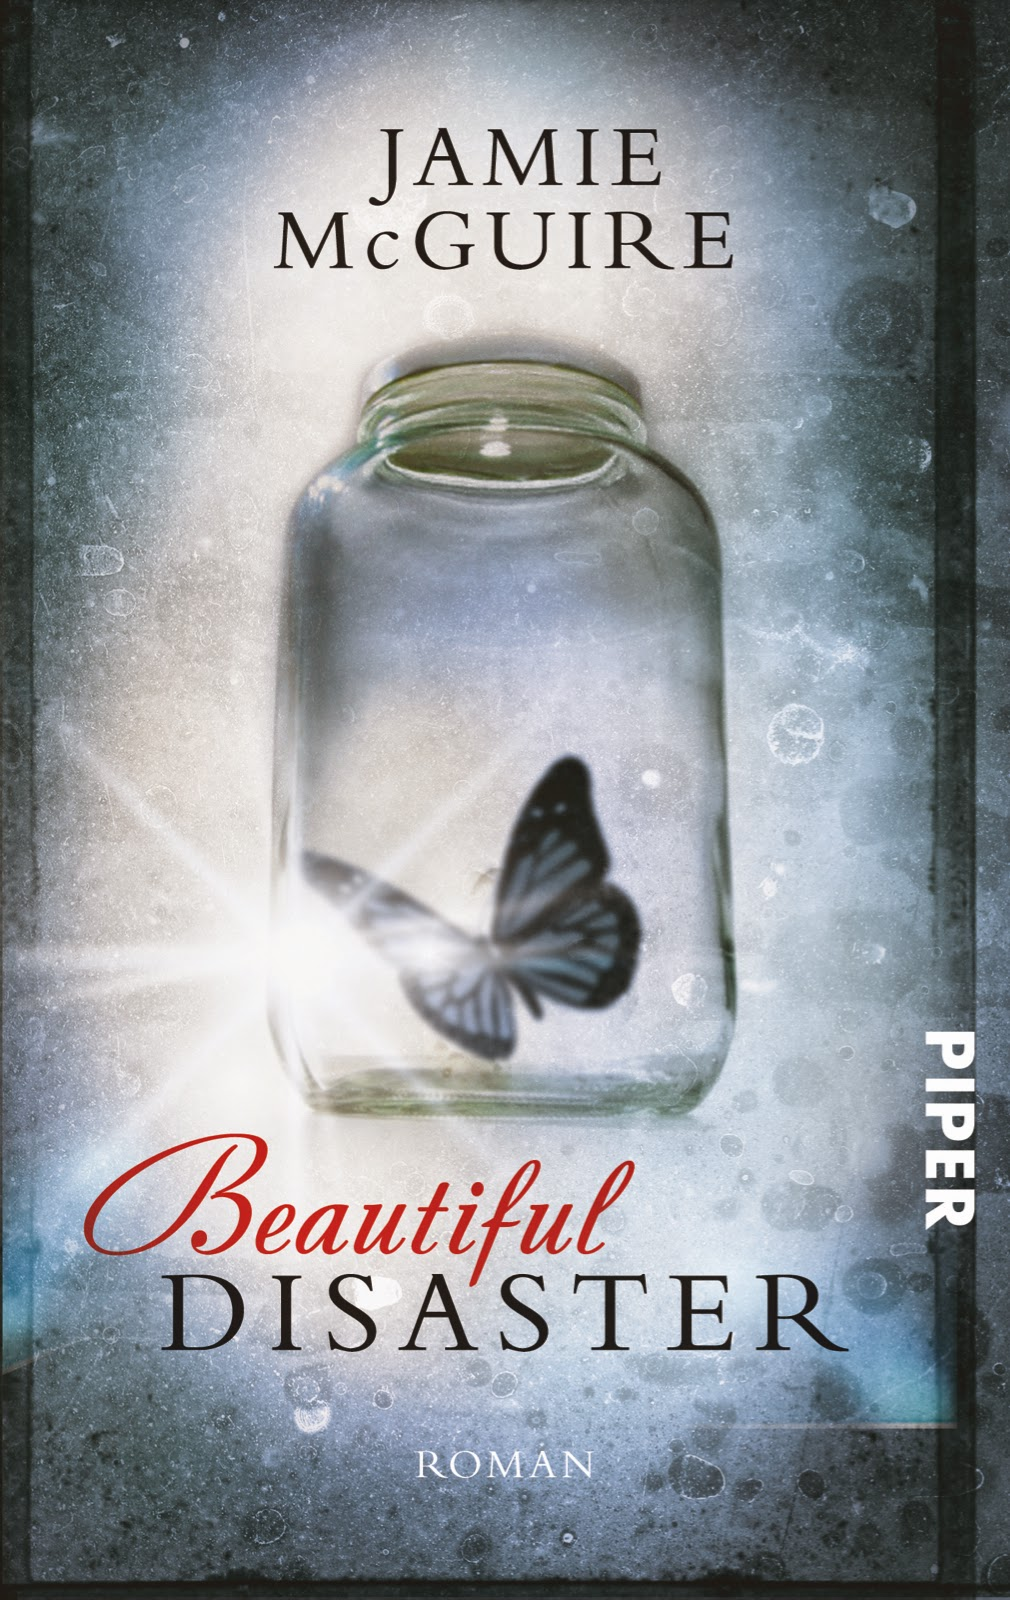 http://onlybookalicious.blogspot.de/2014/06/rezension-beautiful-disaster-von-jamie.html